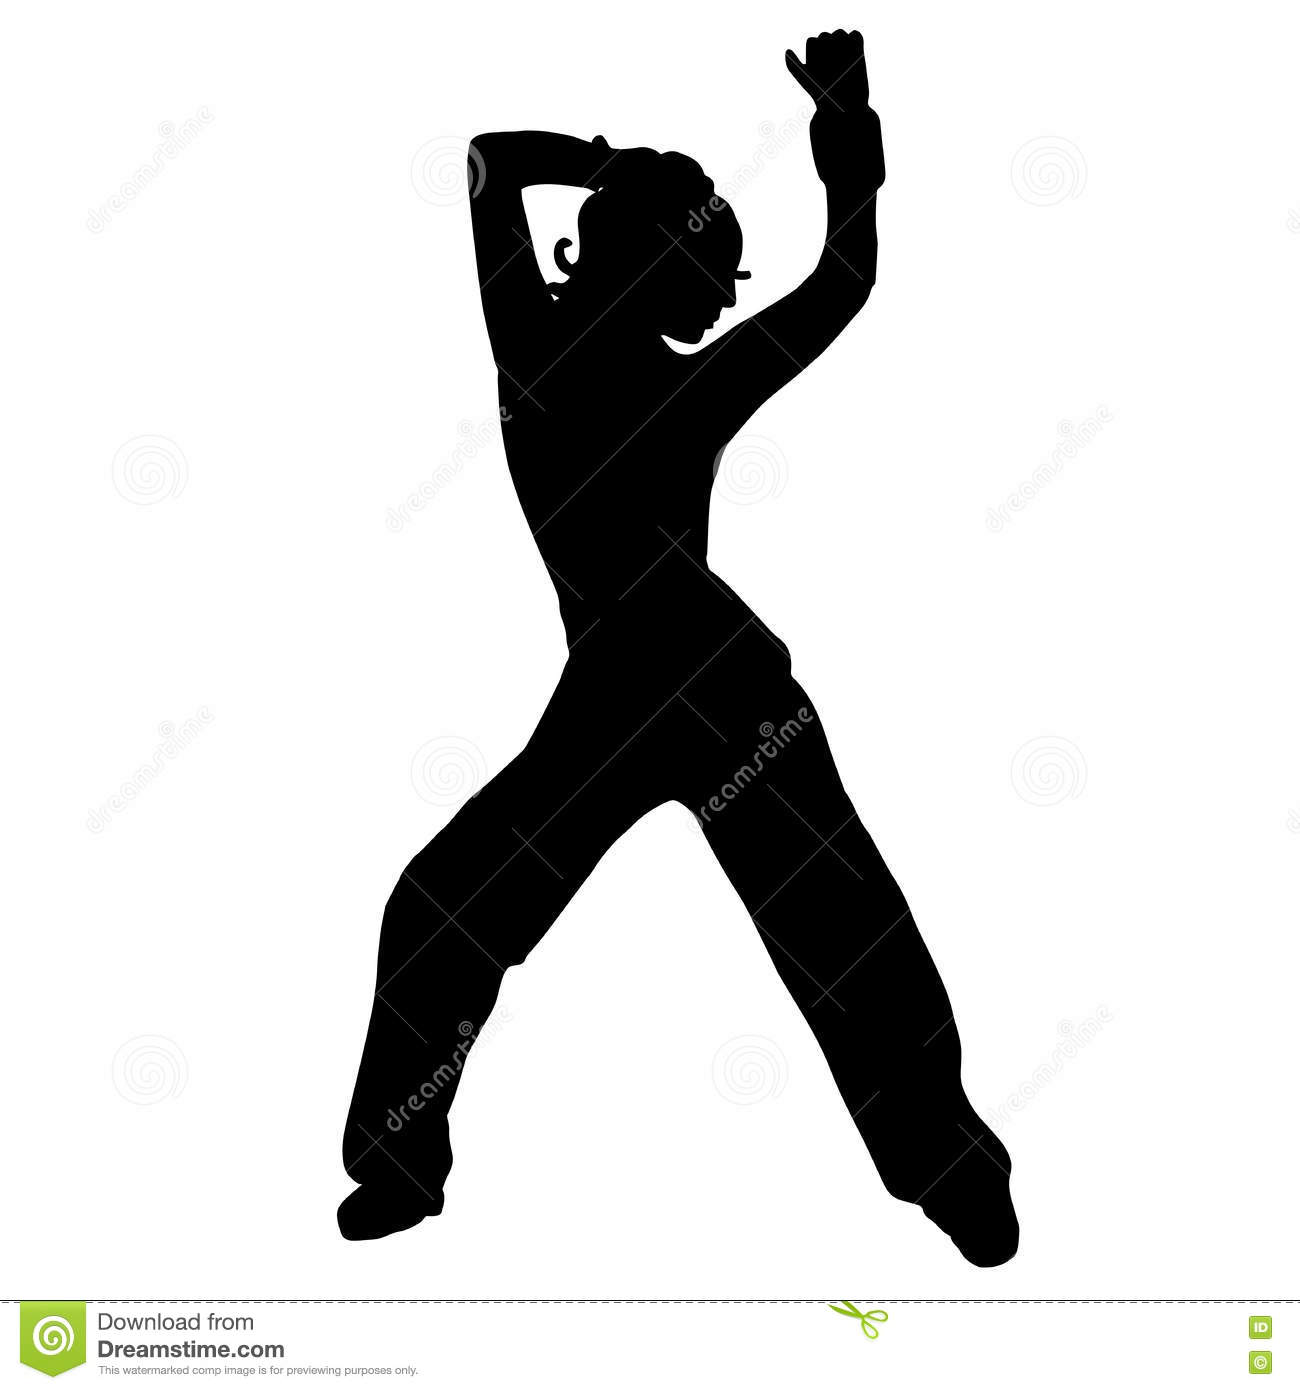 The Girl Is Dancing Belly Dancing Silhouette Street Dance Go Illustration 77880966 Megapixl